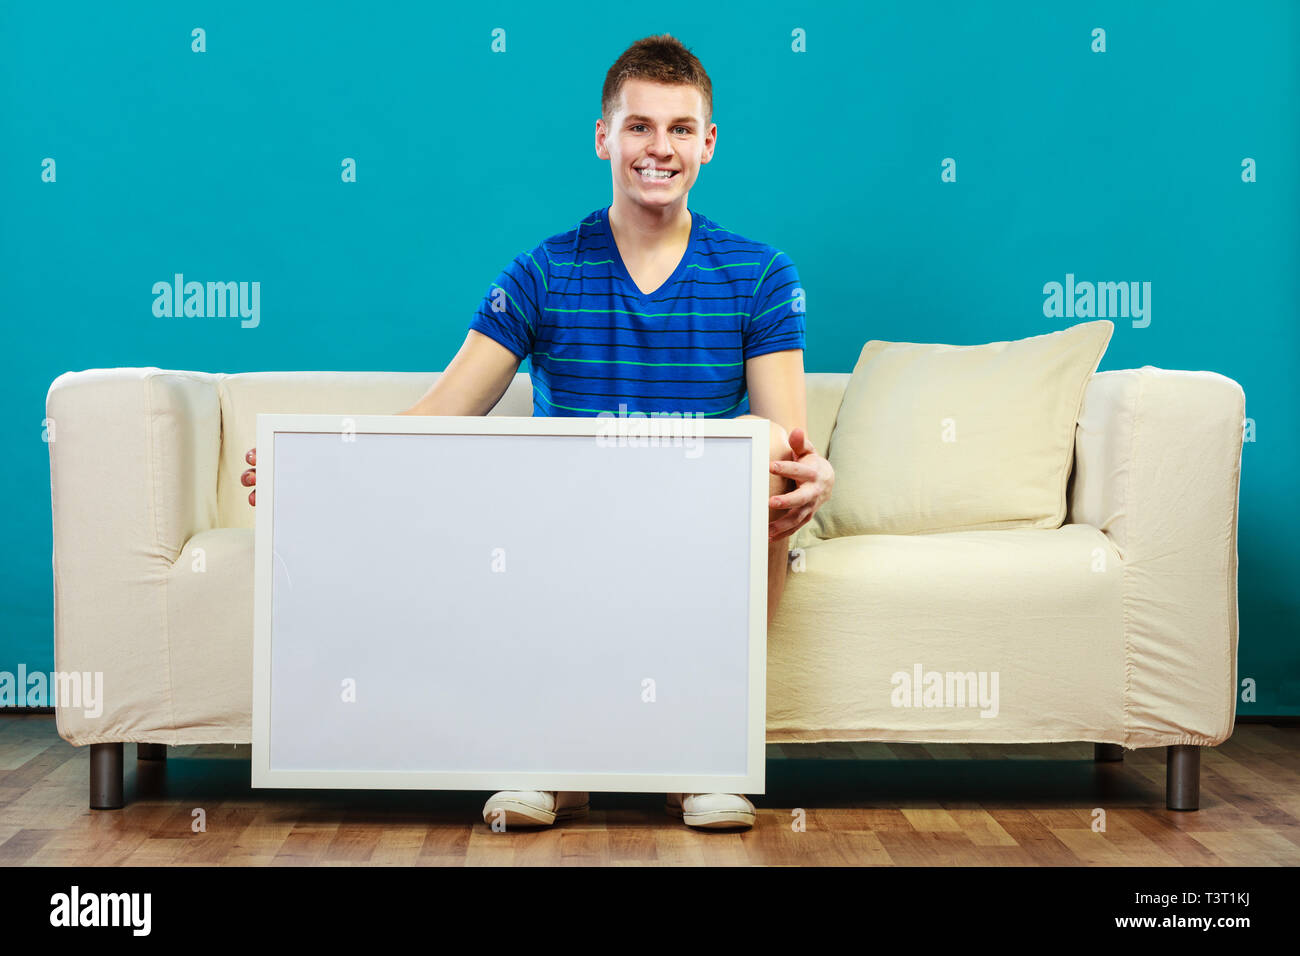 Advertisement concept. Young man sitting on sofa with blank presentation board. Male model showing banner sign billboard copy space for text on blue - Stock Image